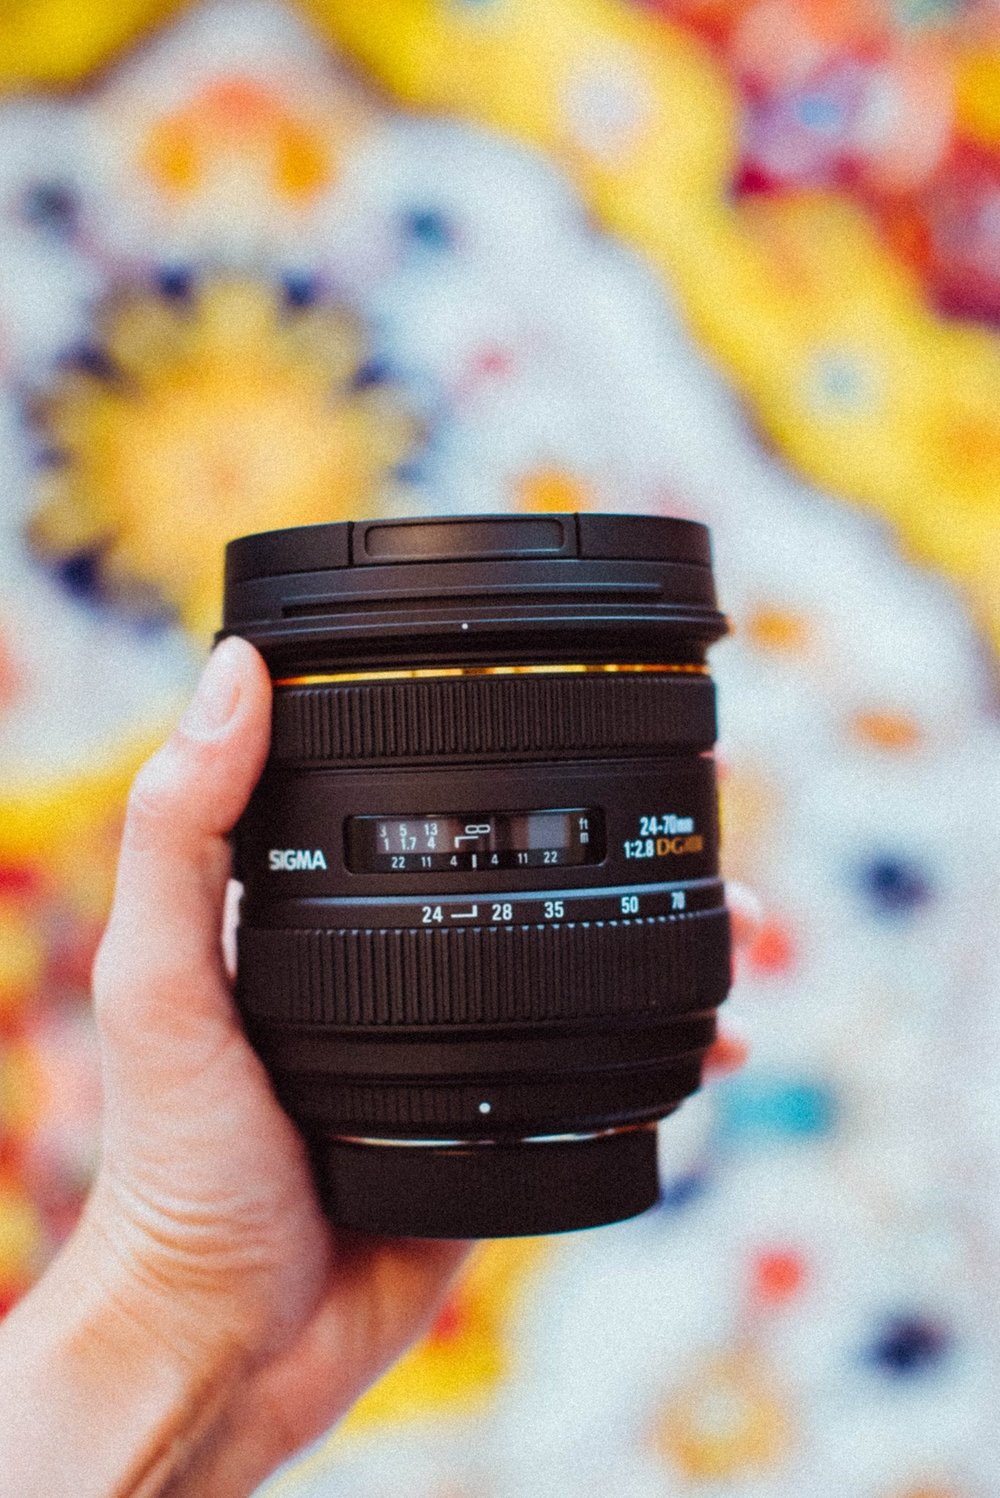 My 24-70mm 2.8 lens is probably my most used lens while at a festival.